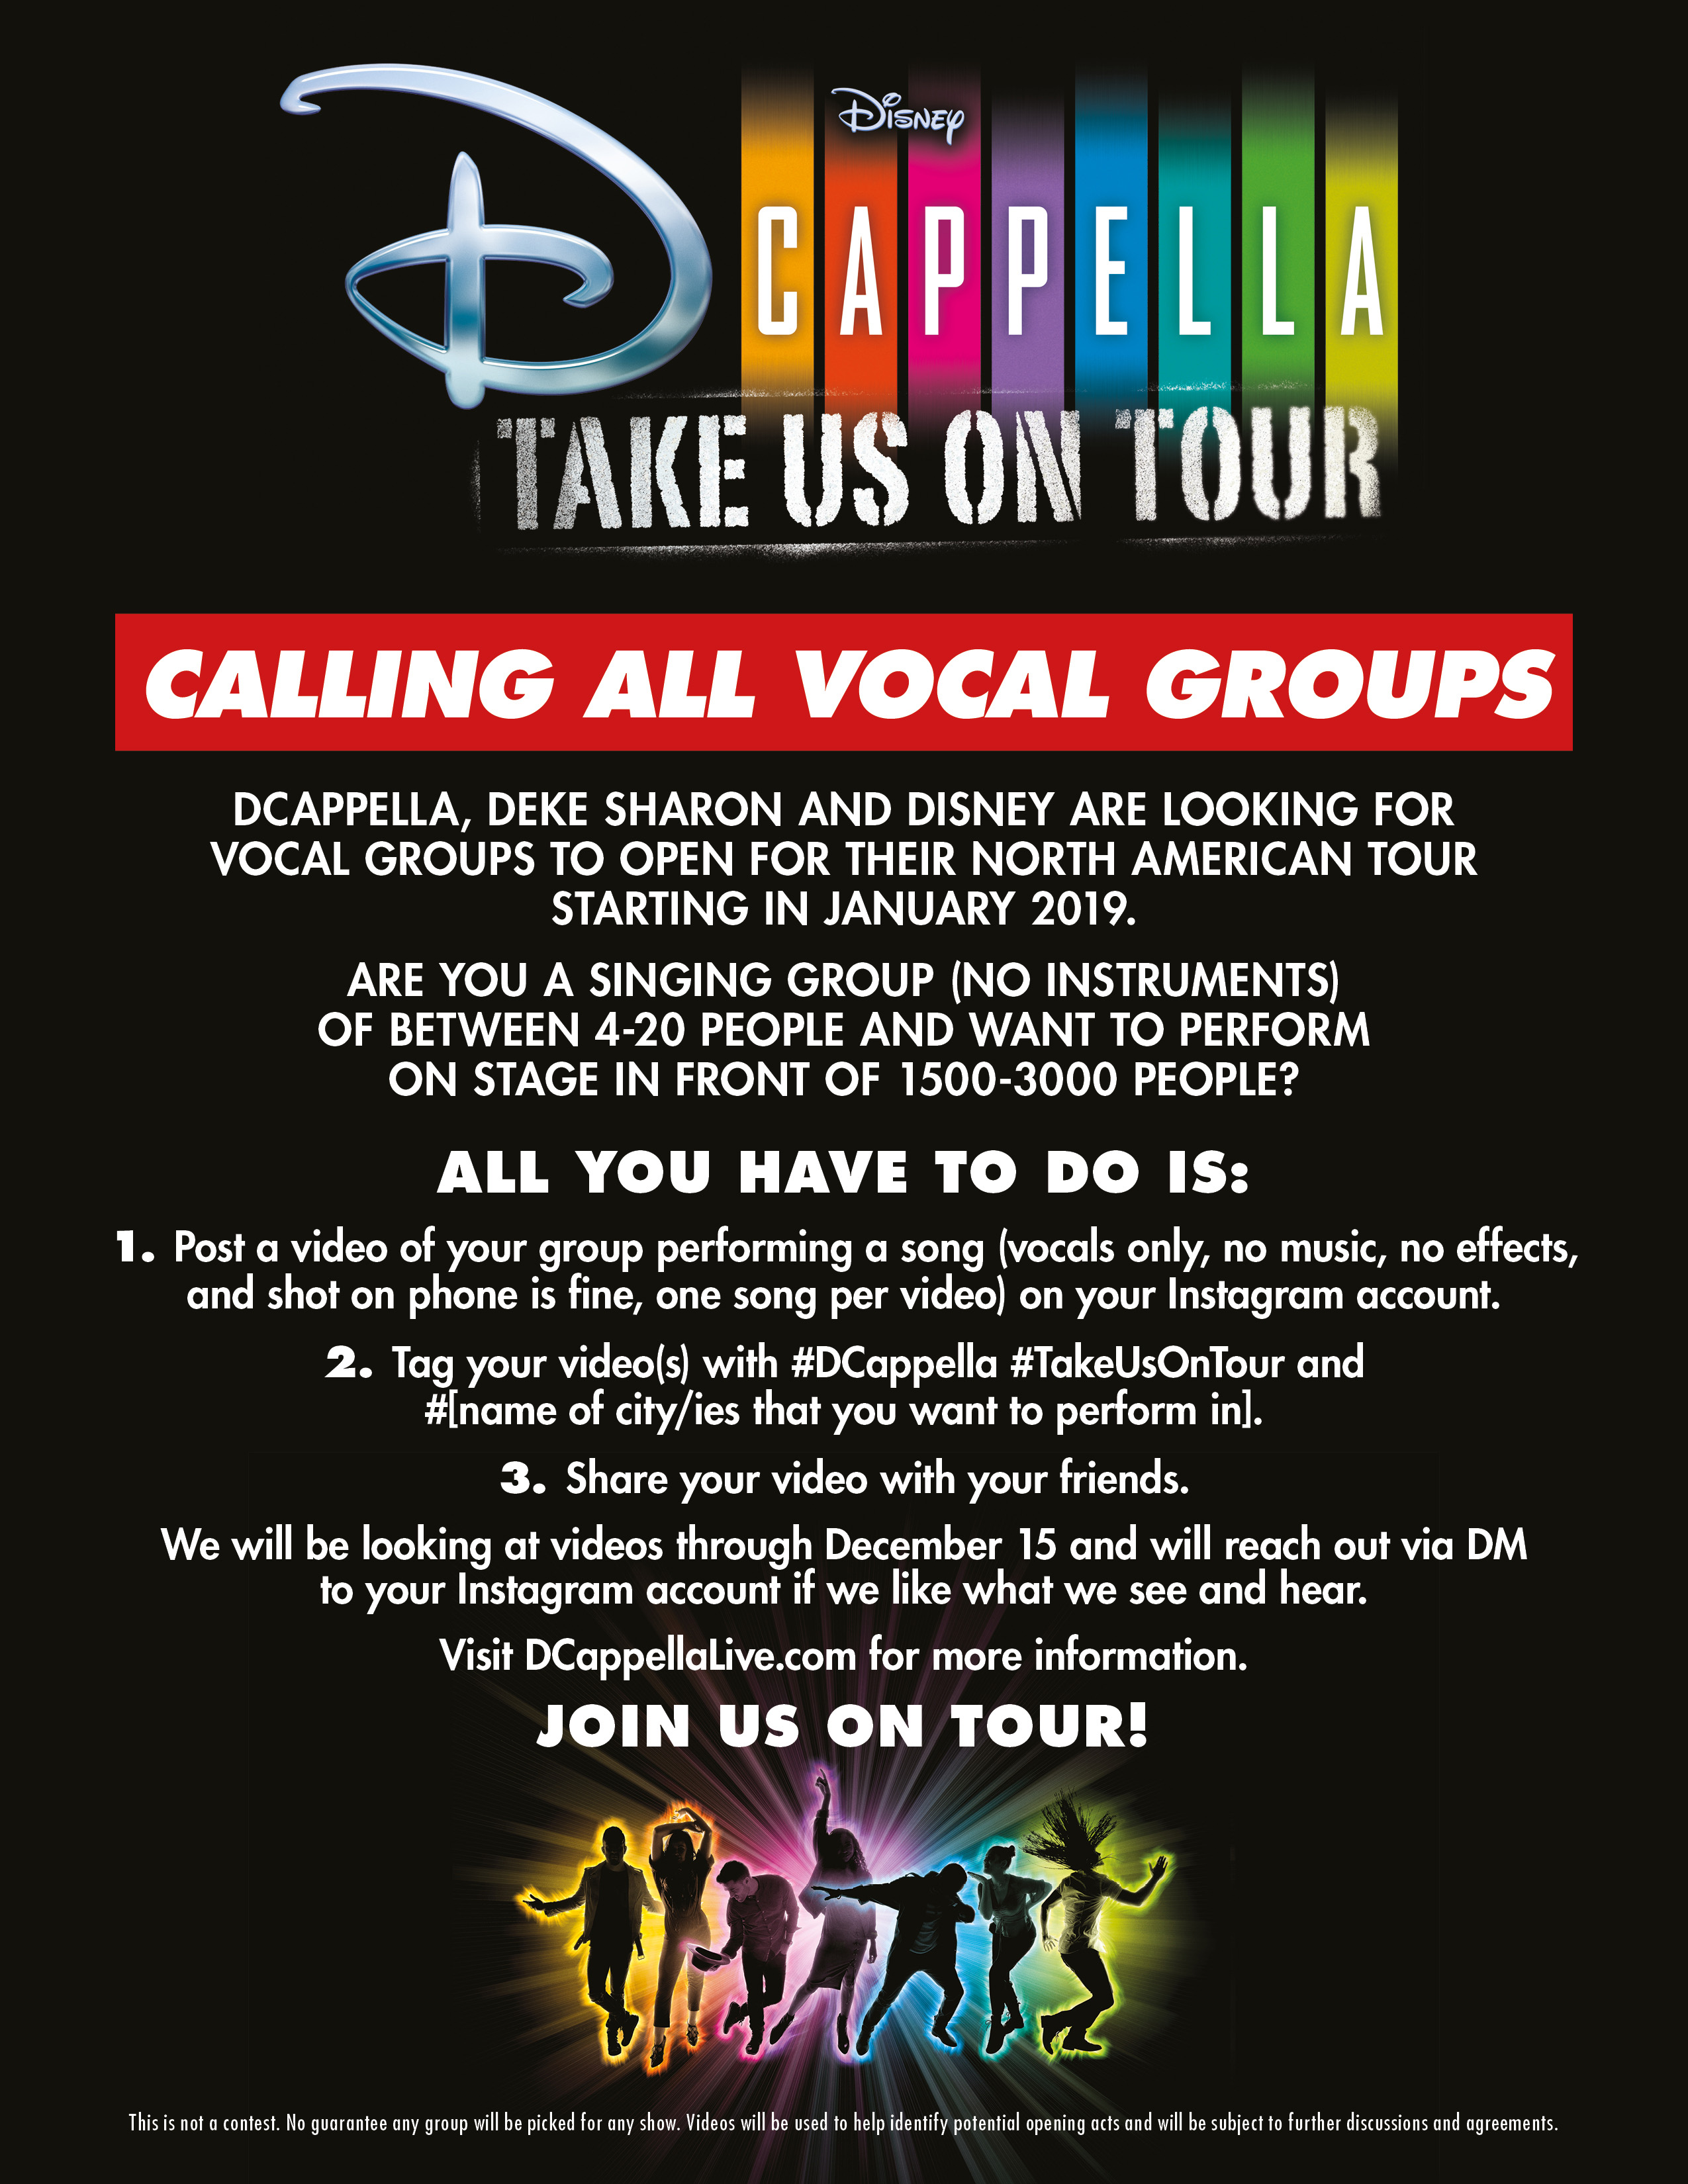 New DCappella Album PLUS a Chance to Open For The Tour